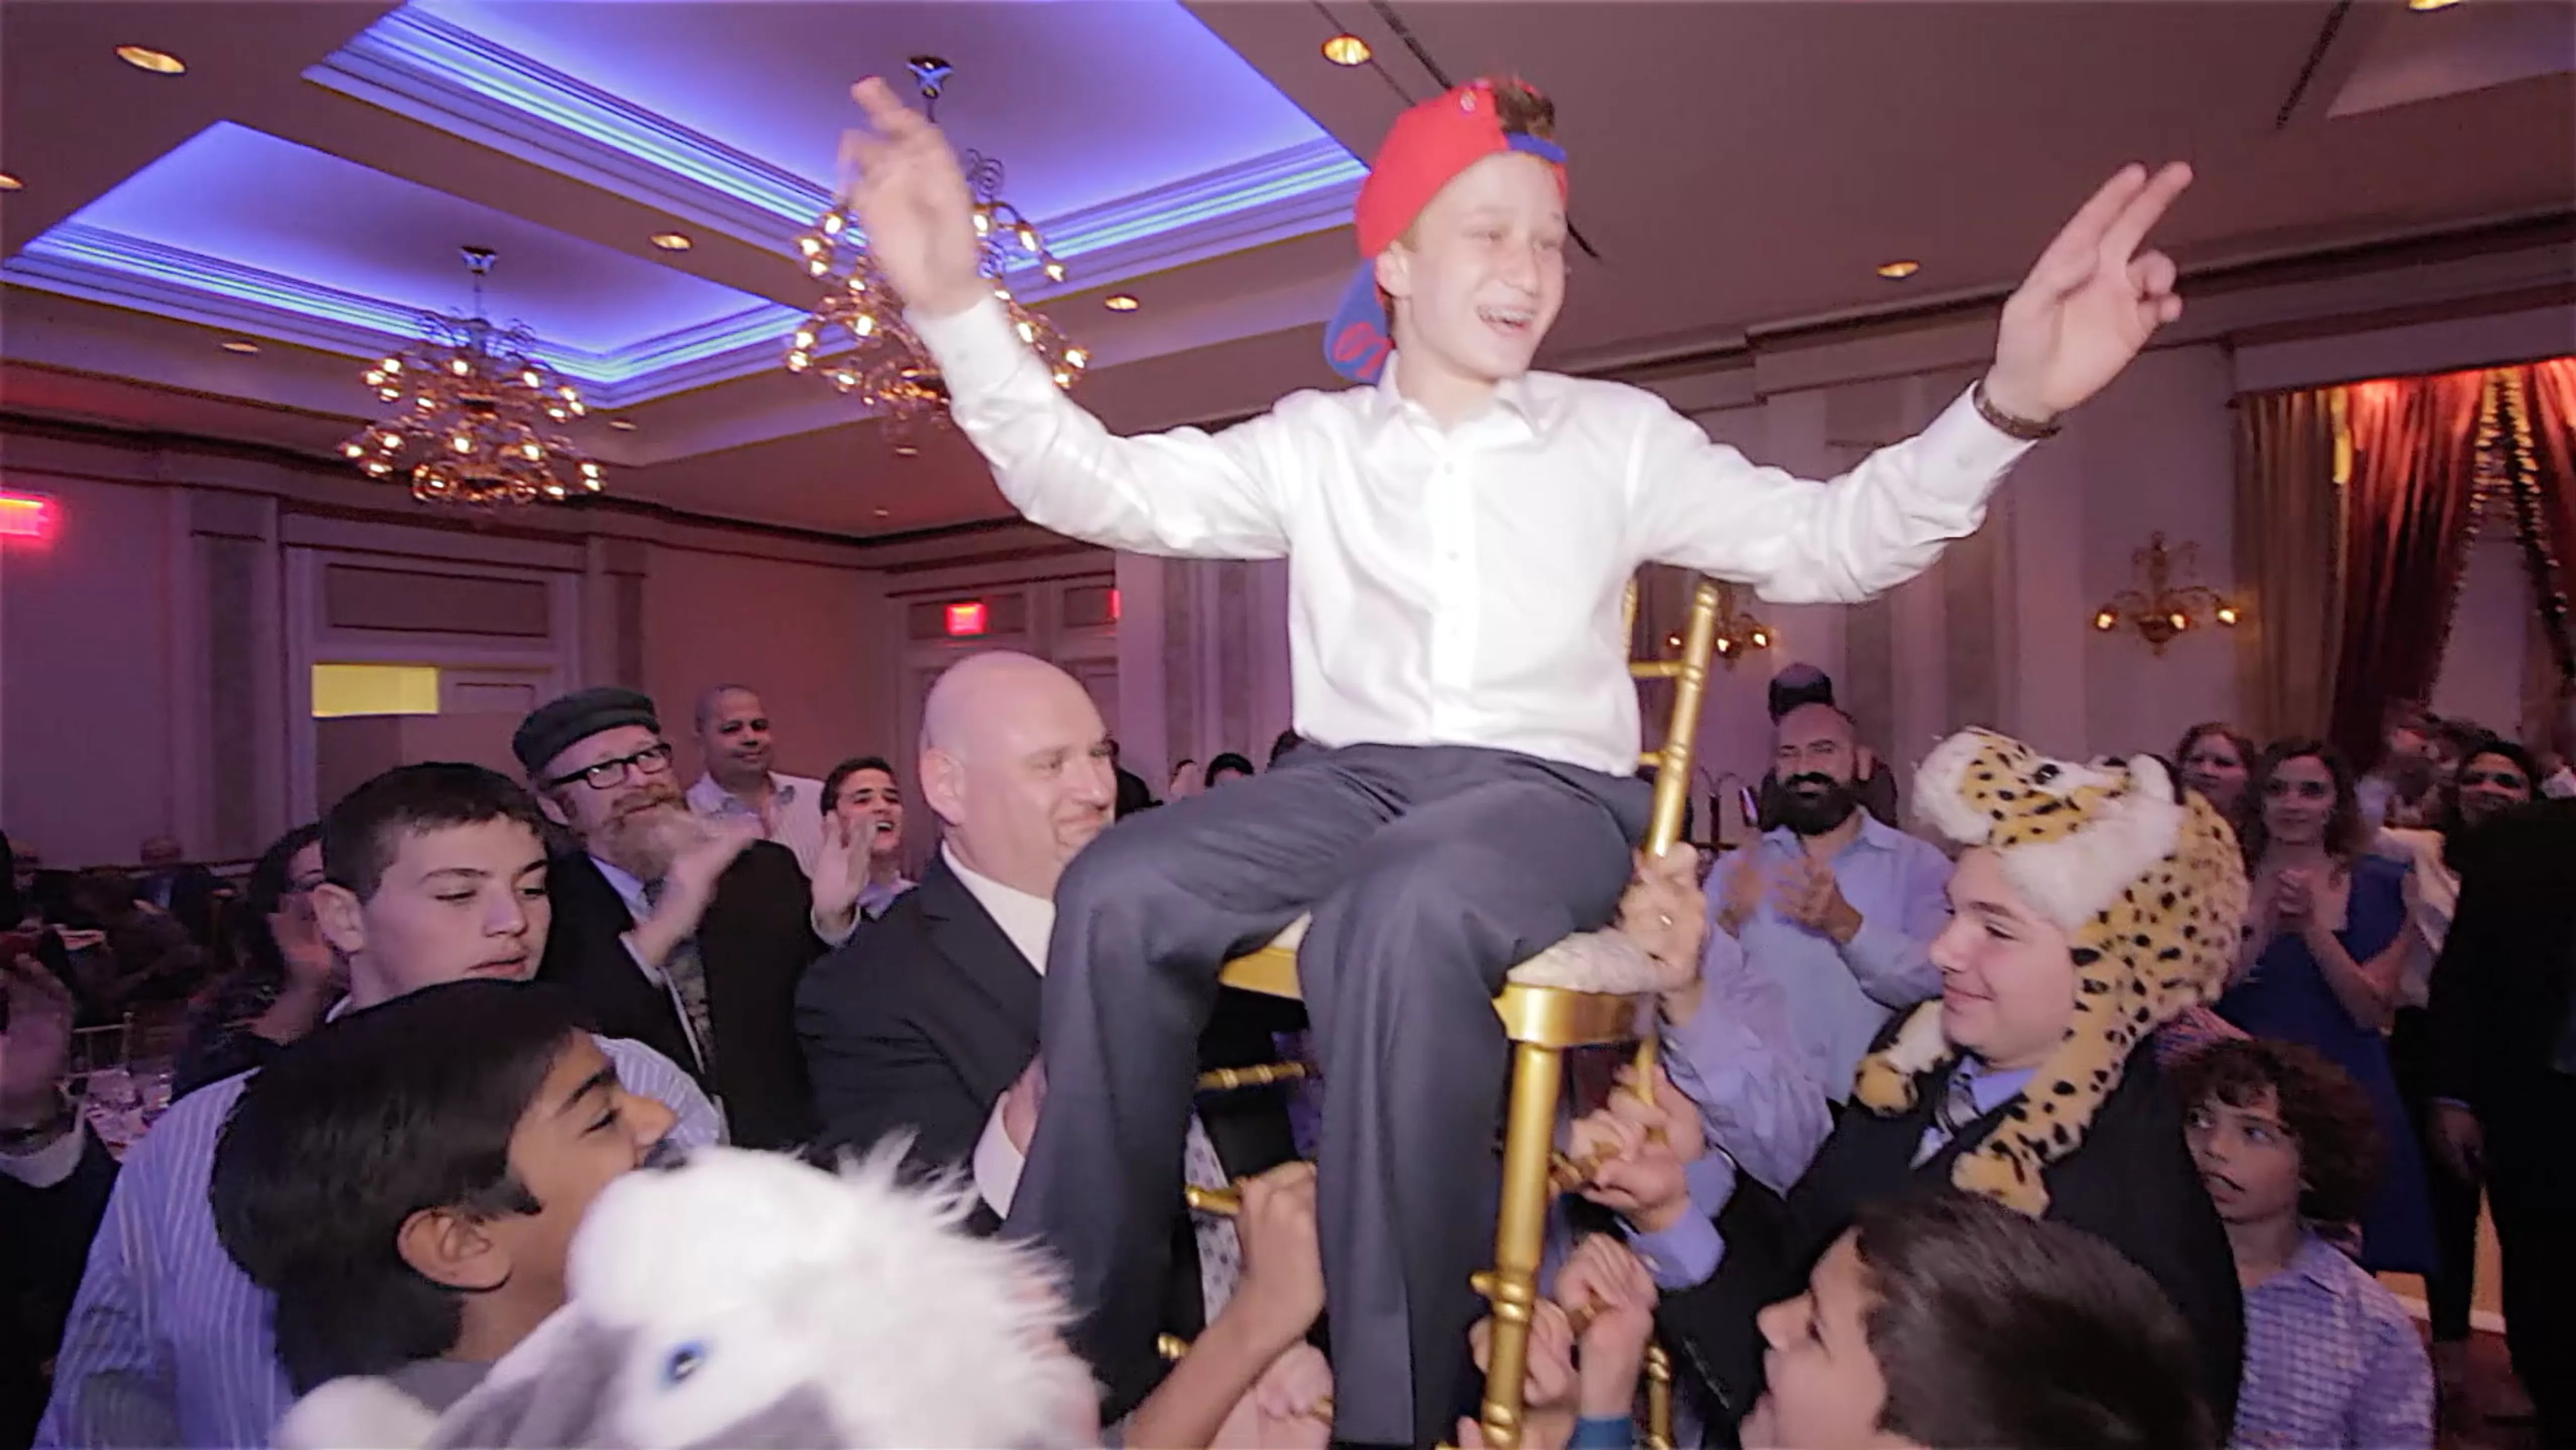 Image result for bar mitzvah party